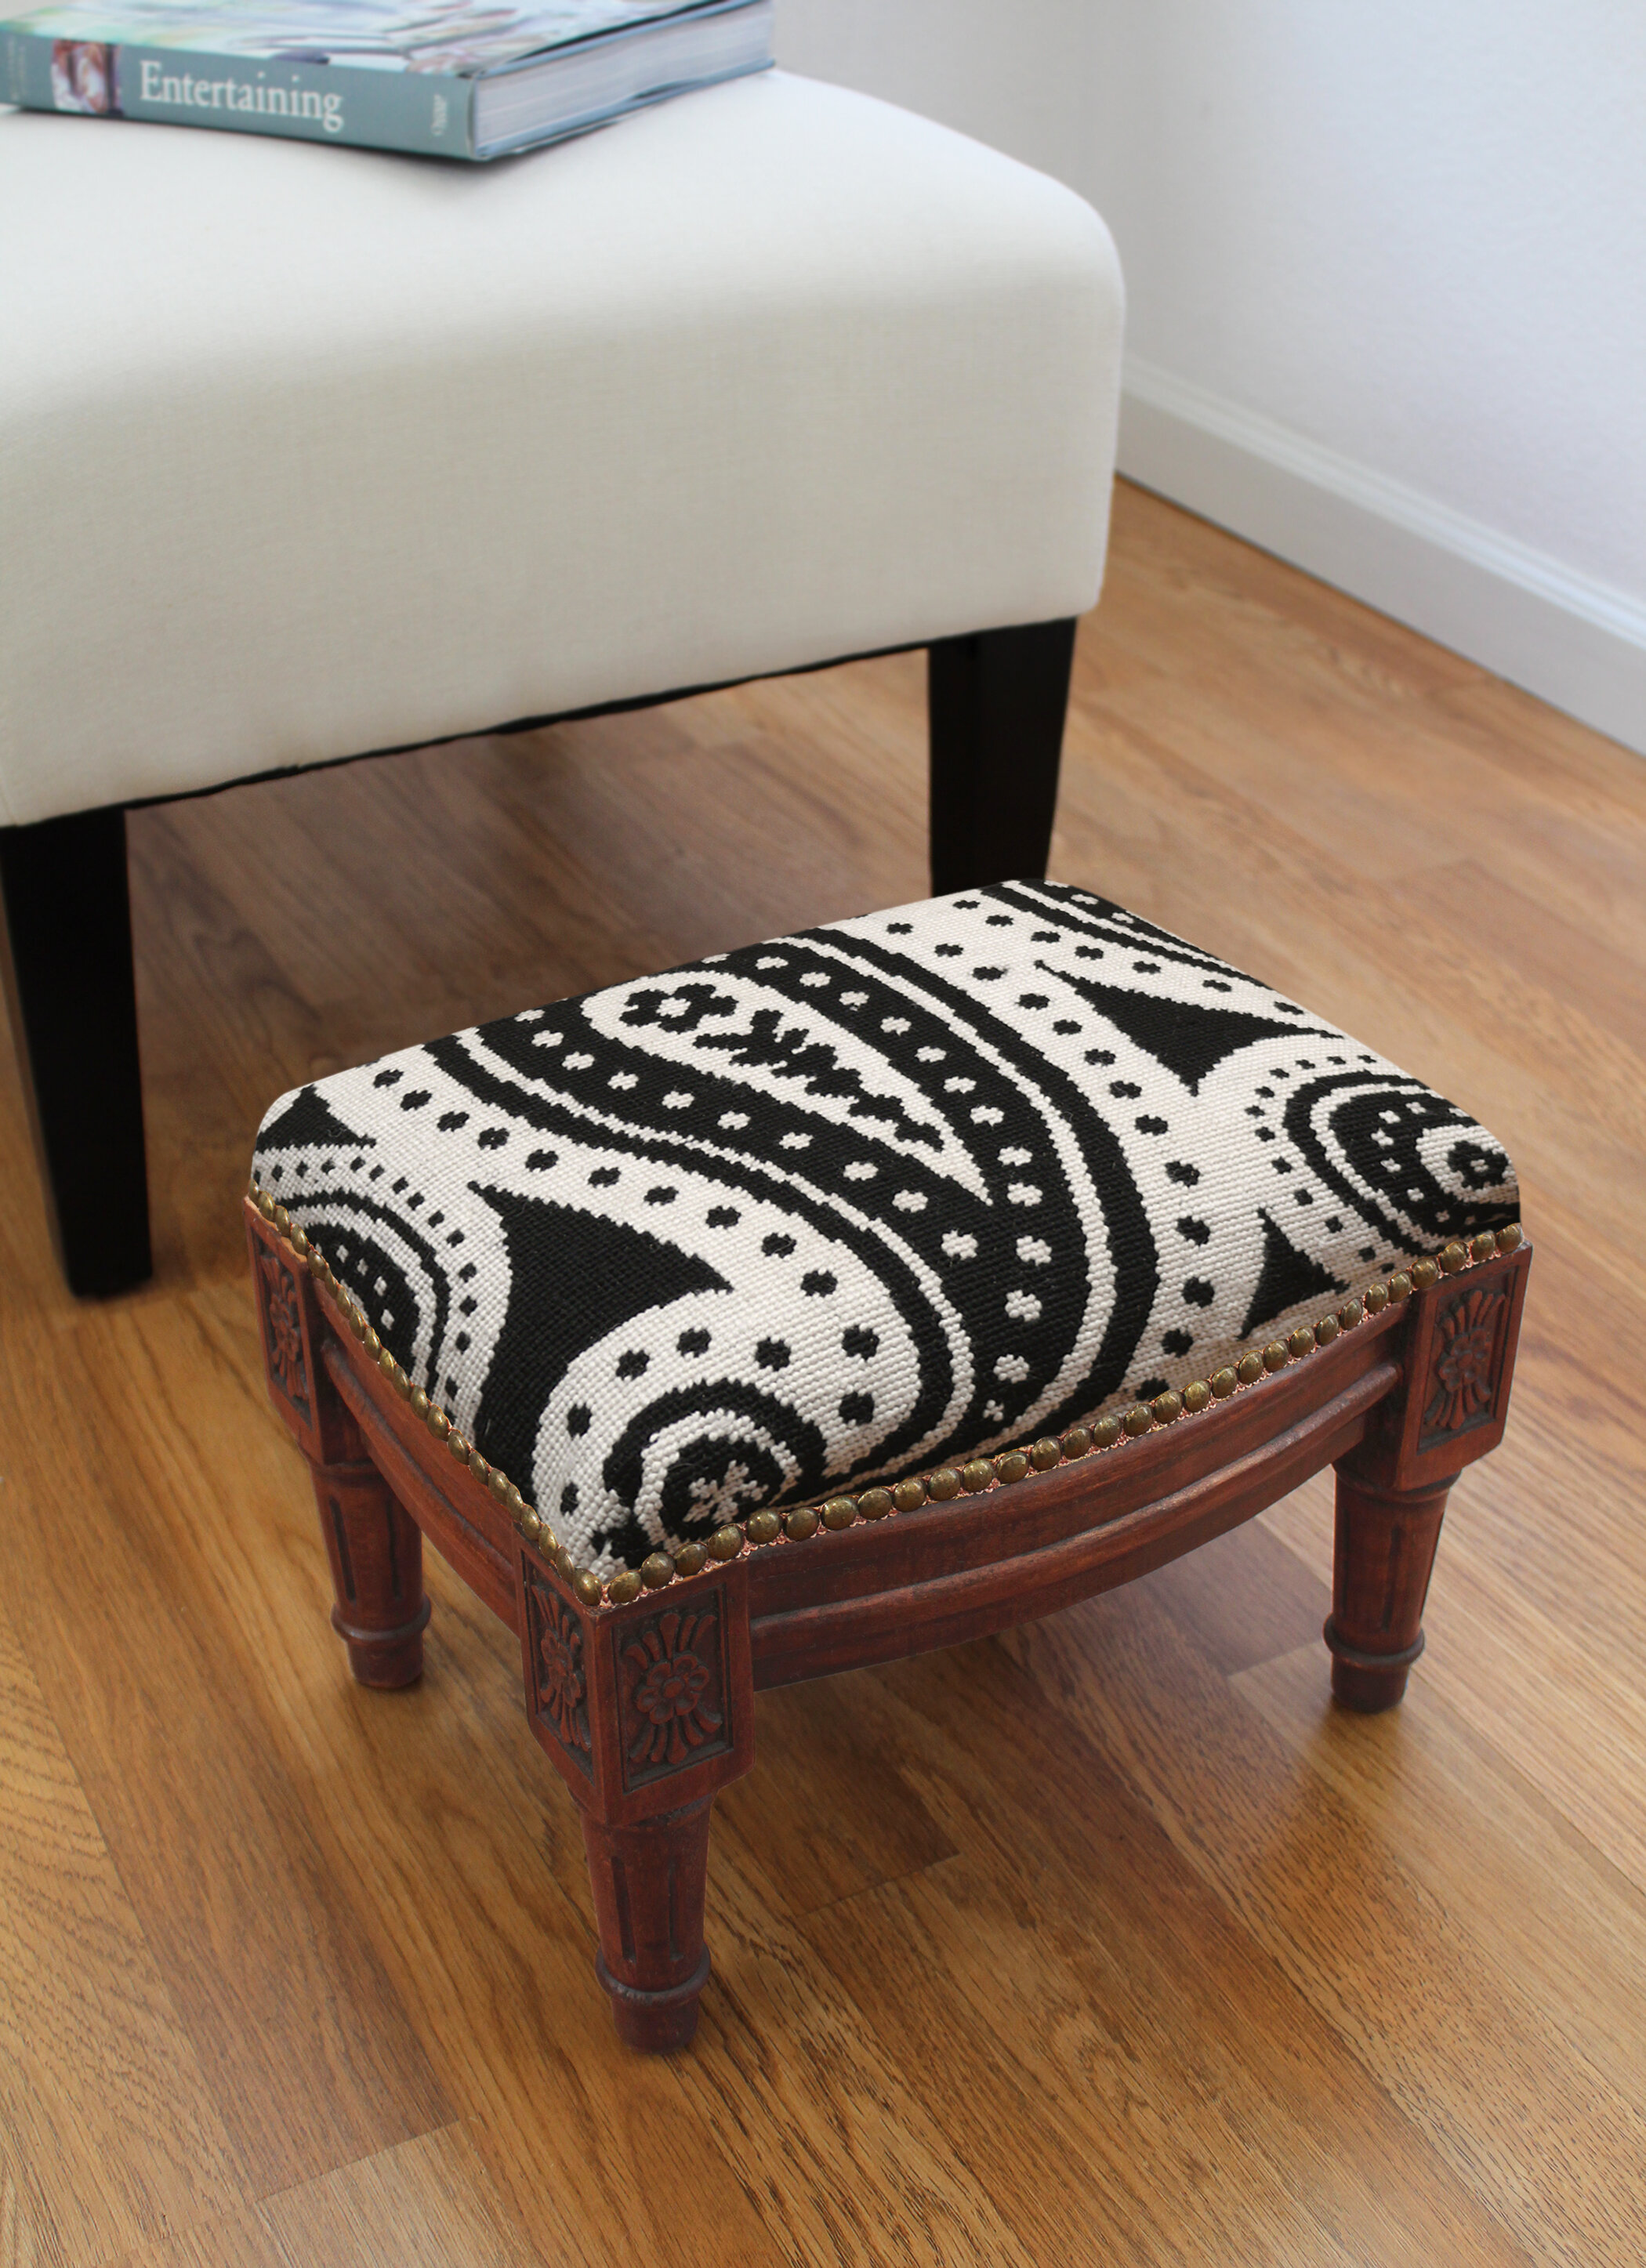 123 Creations Paisley Wool Needlepoint Upholstered Accent Stool Reviews Wayfair